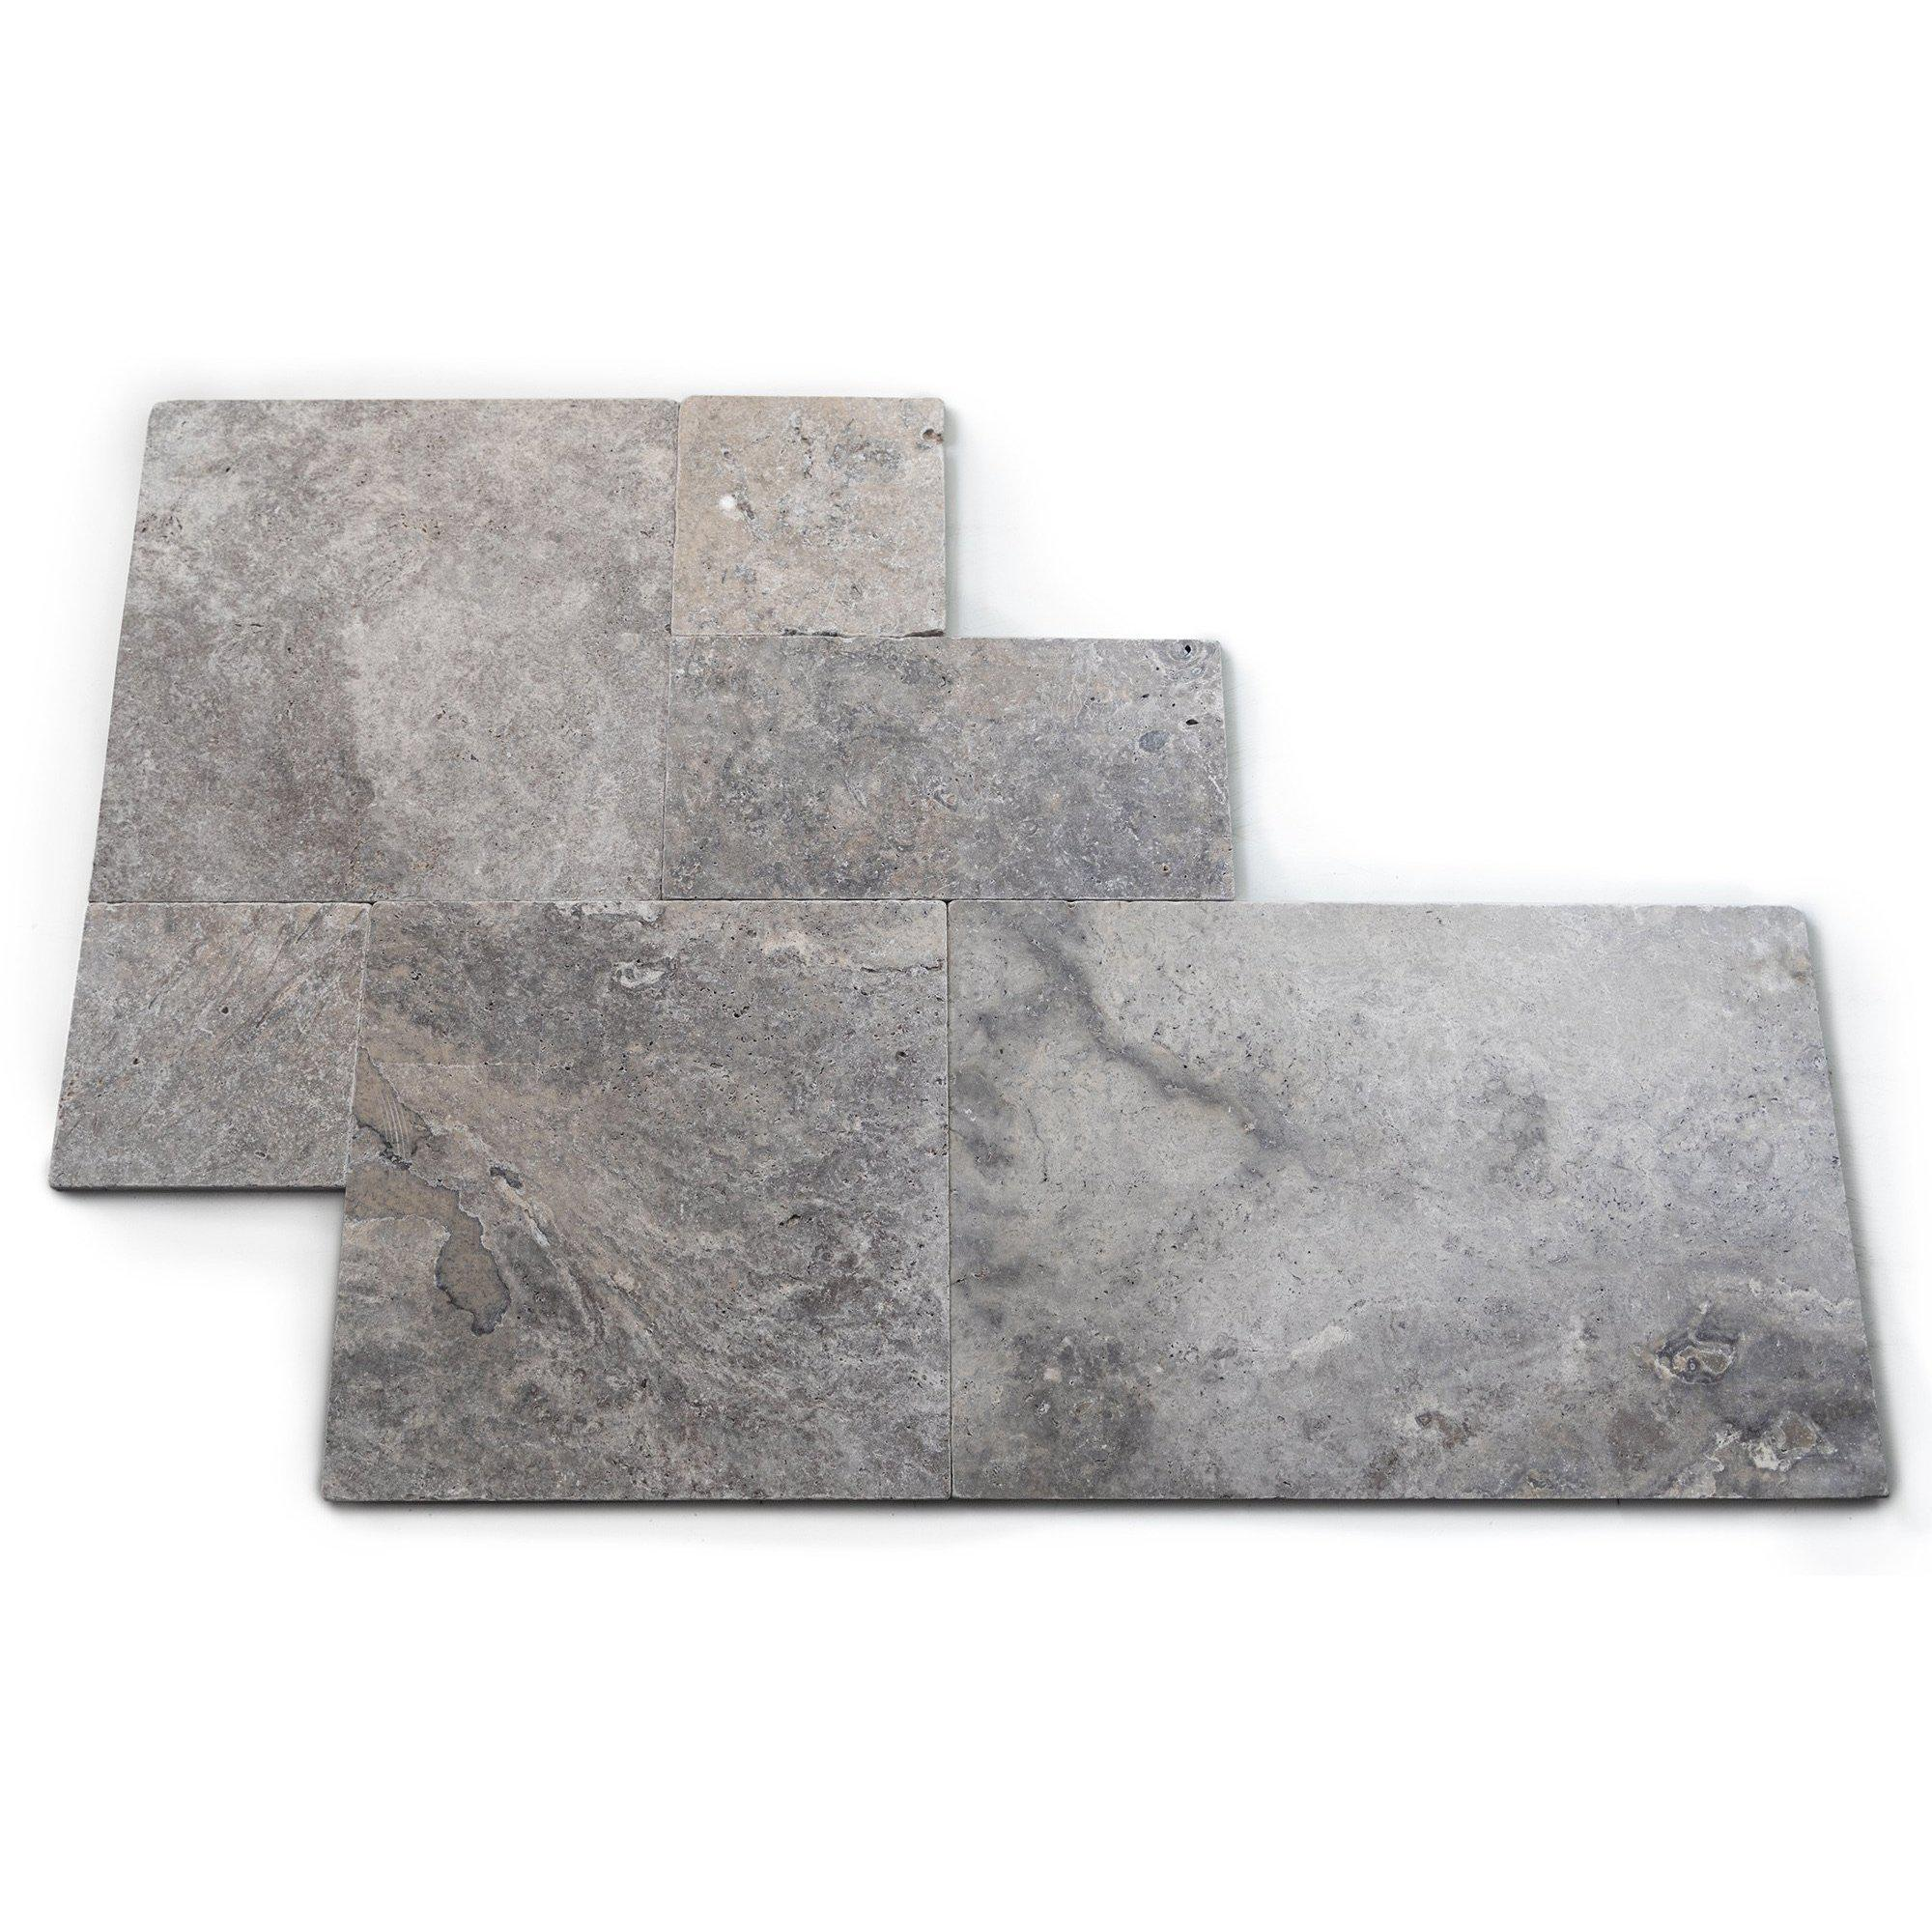 Silver Tumbled French Set Travertine Tile